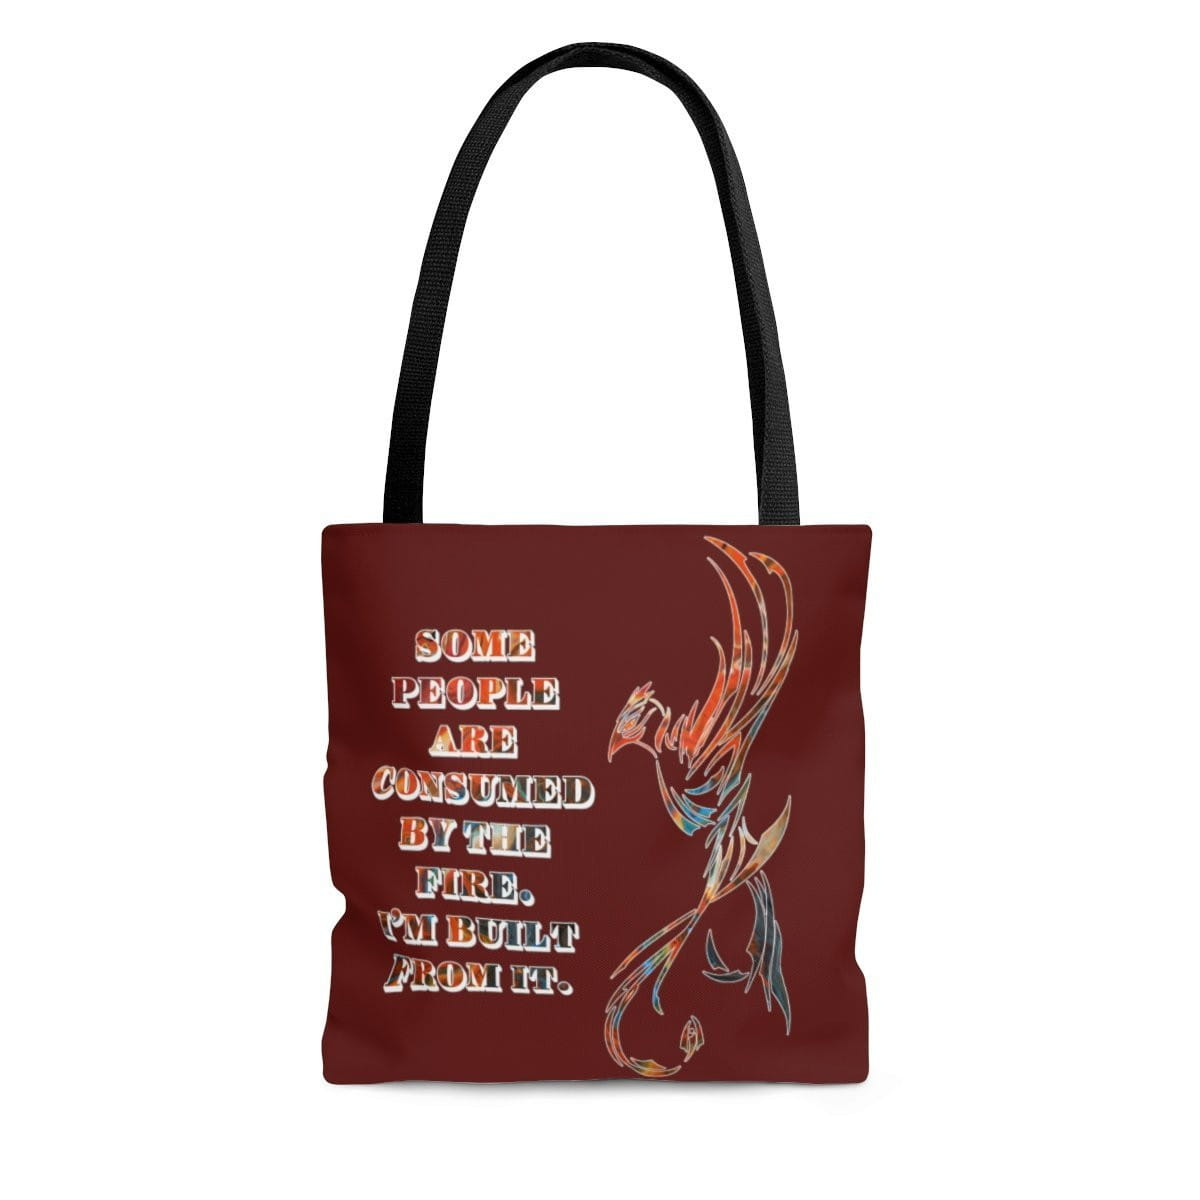 Built from Fire - Tote Bag - Fiercely Fem